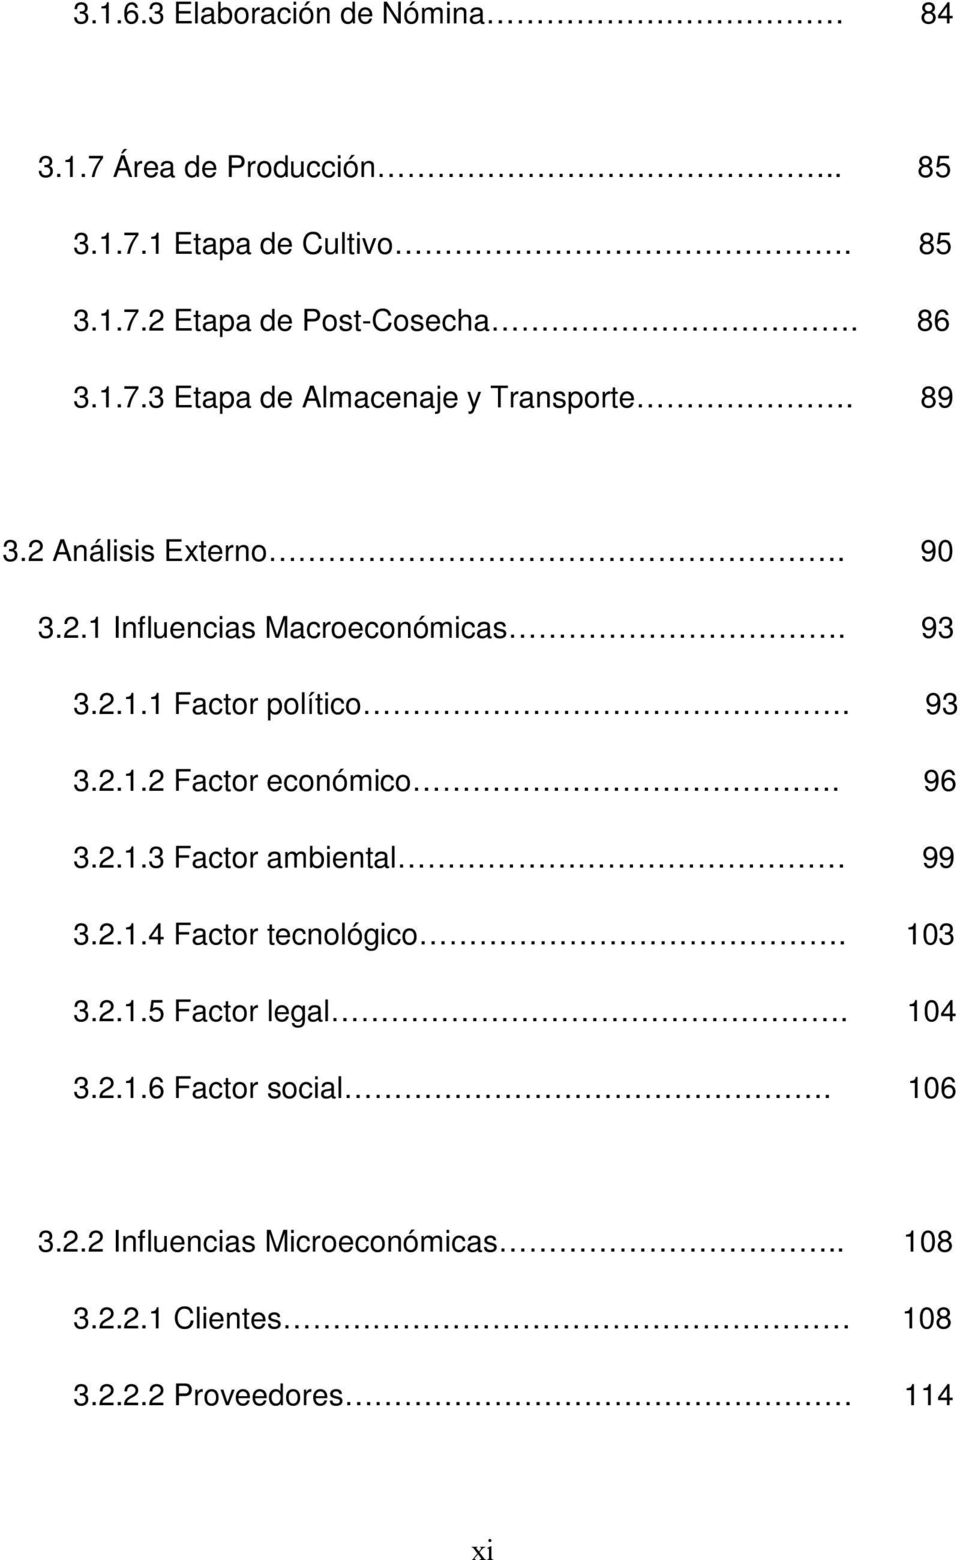 93 3.2.1.2 Factor económico. 96 3.2.1.3 Factor ambiental 99 3.2.1.4 Factor tecnológico. 103 3.2.1.5 Factor legal. 104 3.2.1.6 Factor social.